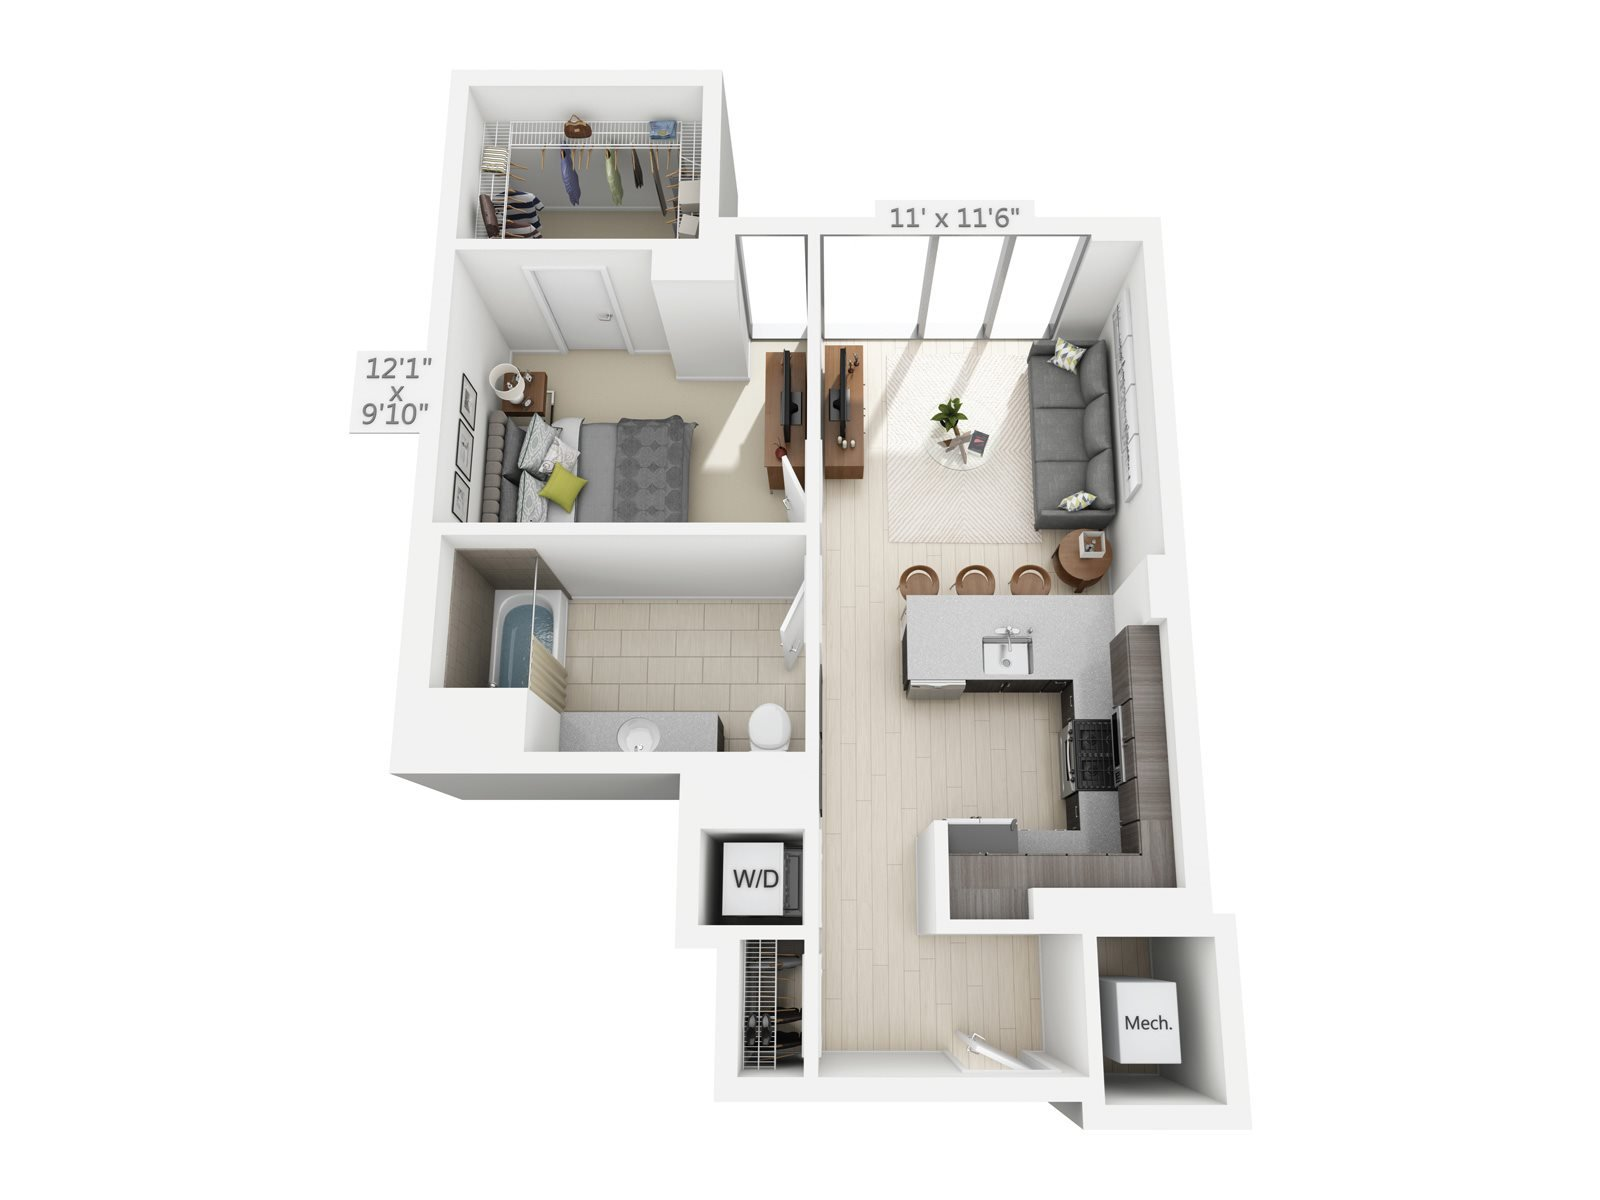 1 BEDROOM/1 BATH B1 Floor Plan 2